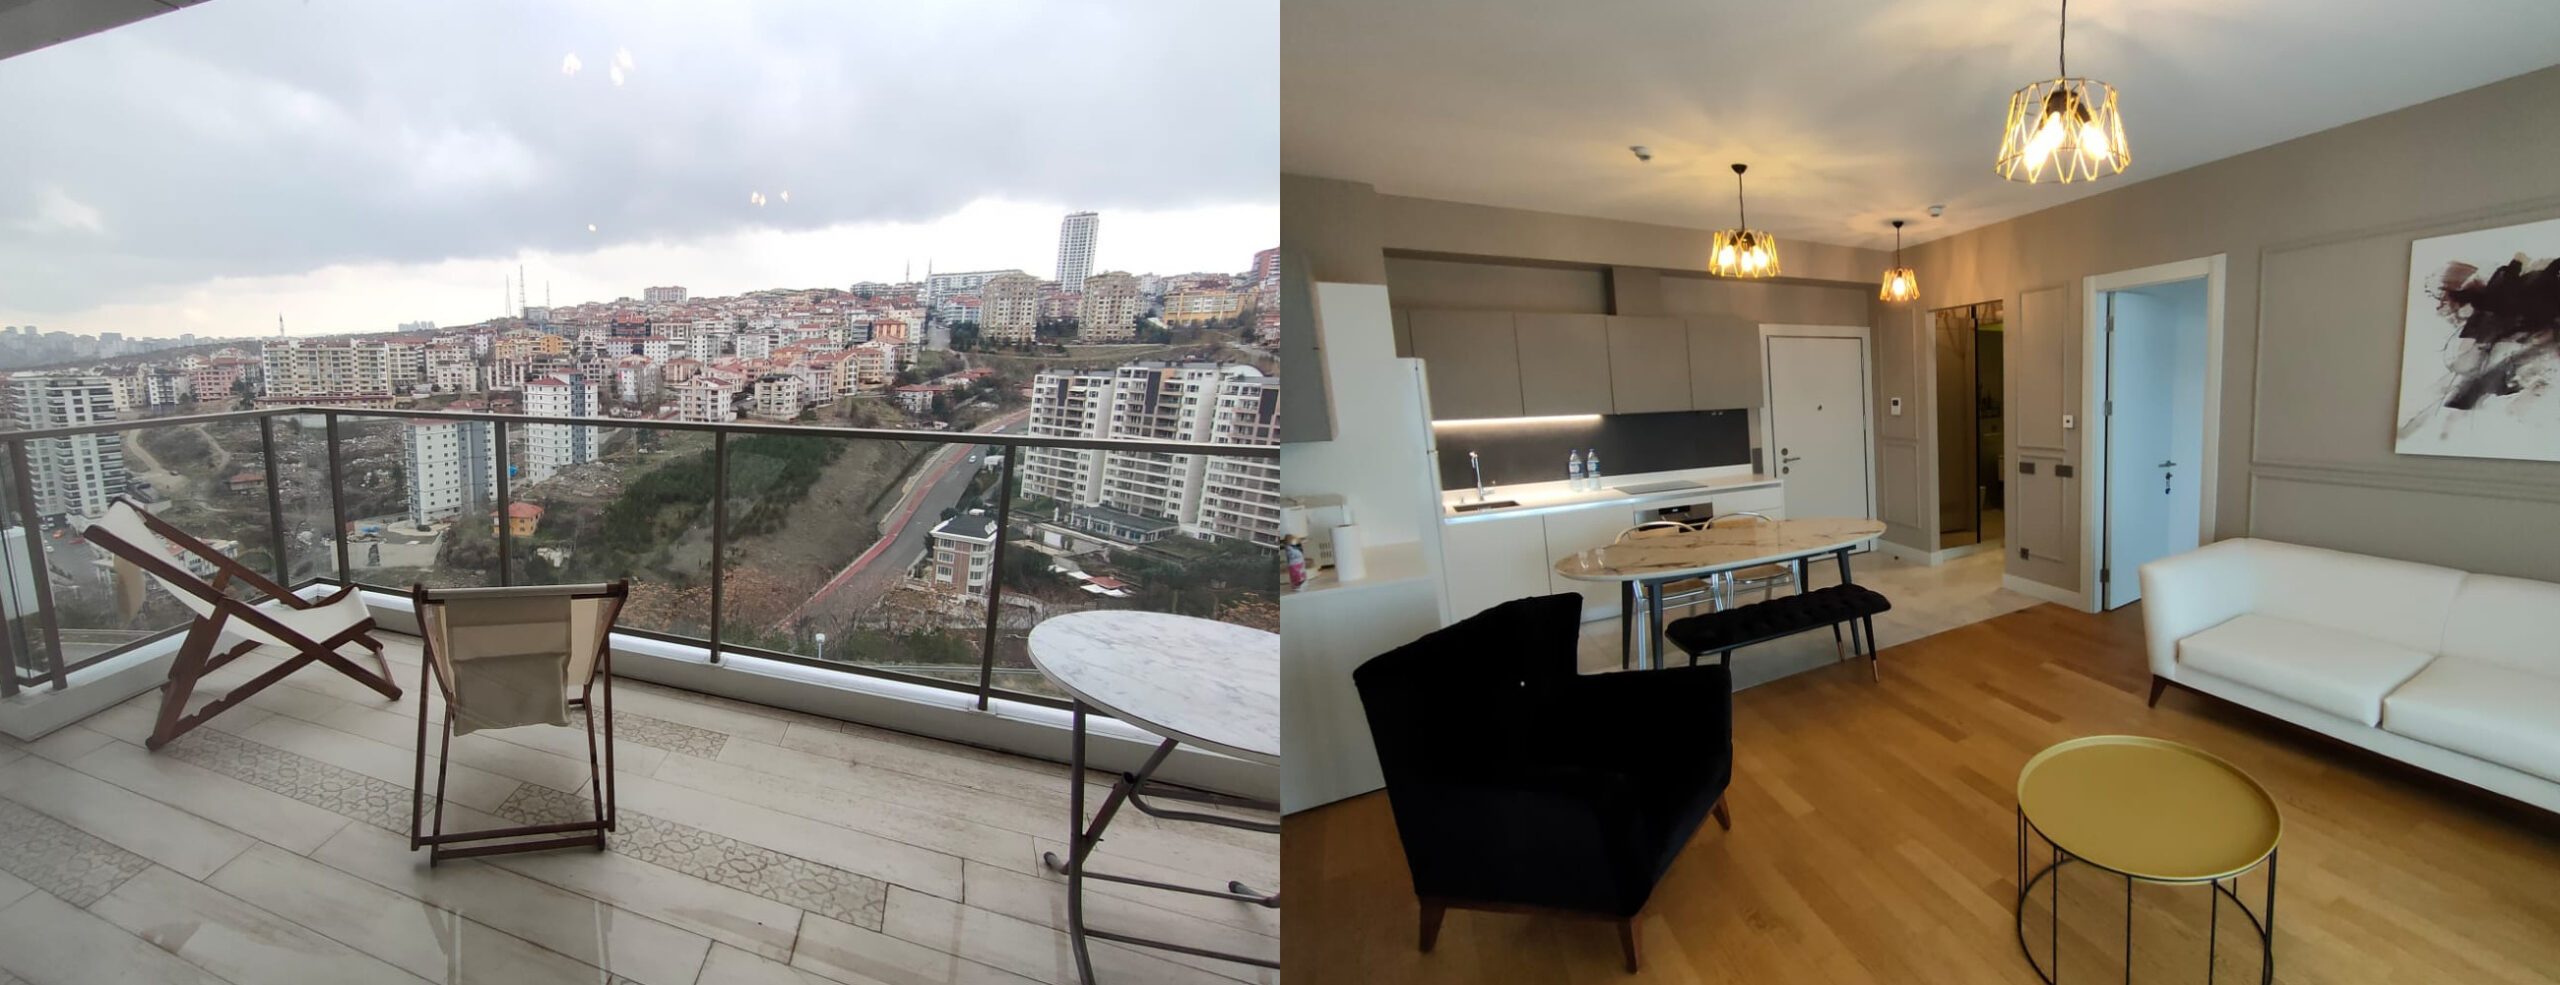 2+1 FURNISHED FLAT IN MESA 66 COMPOUND, GAZİOSMANPAŞA